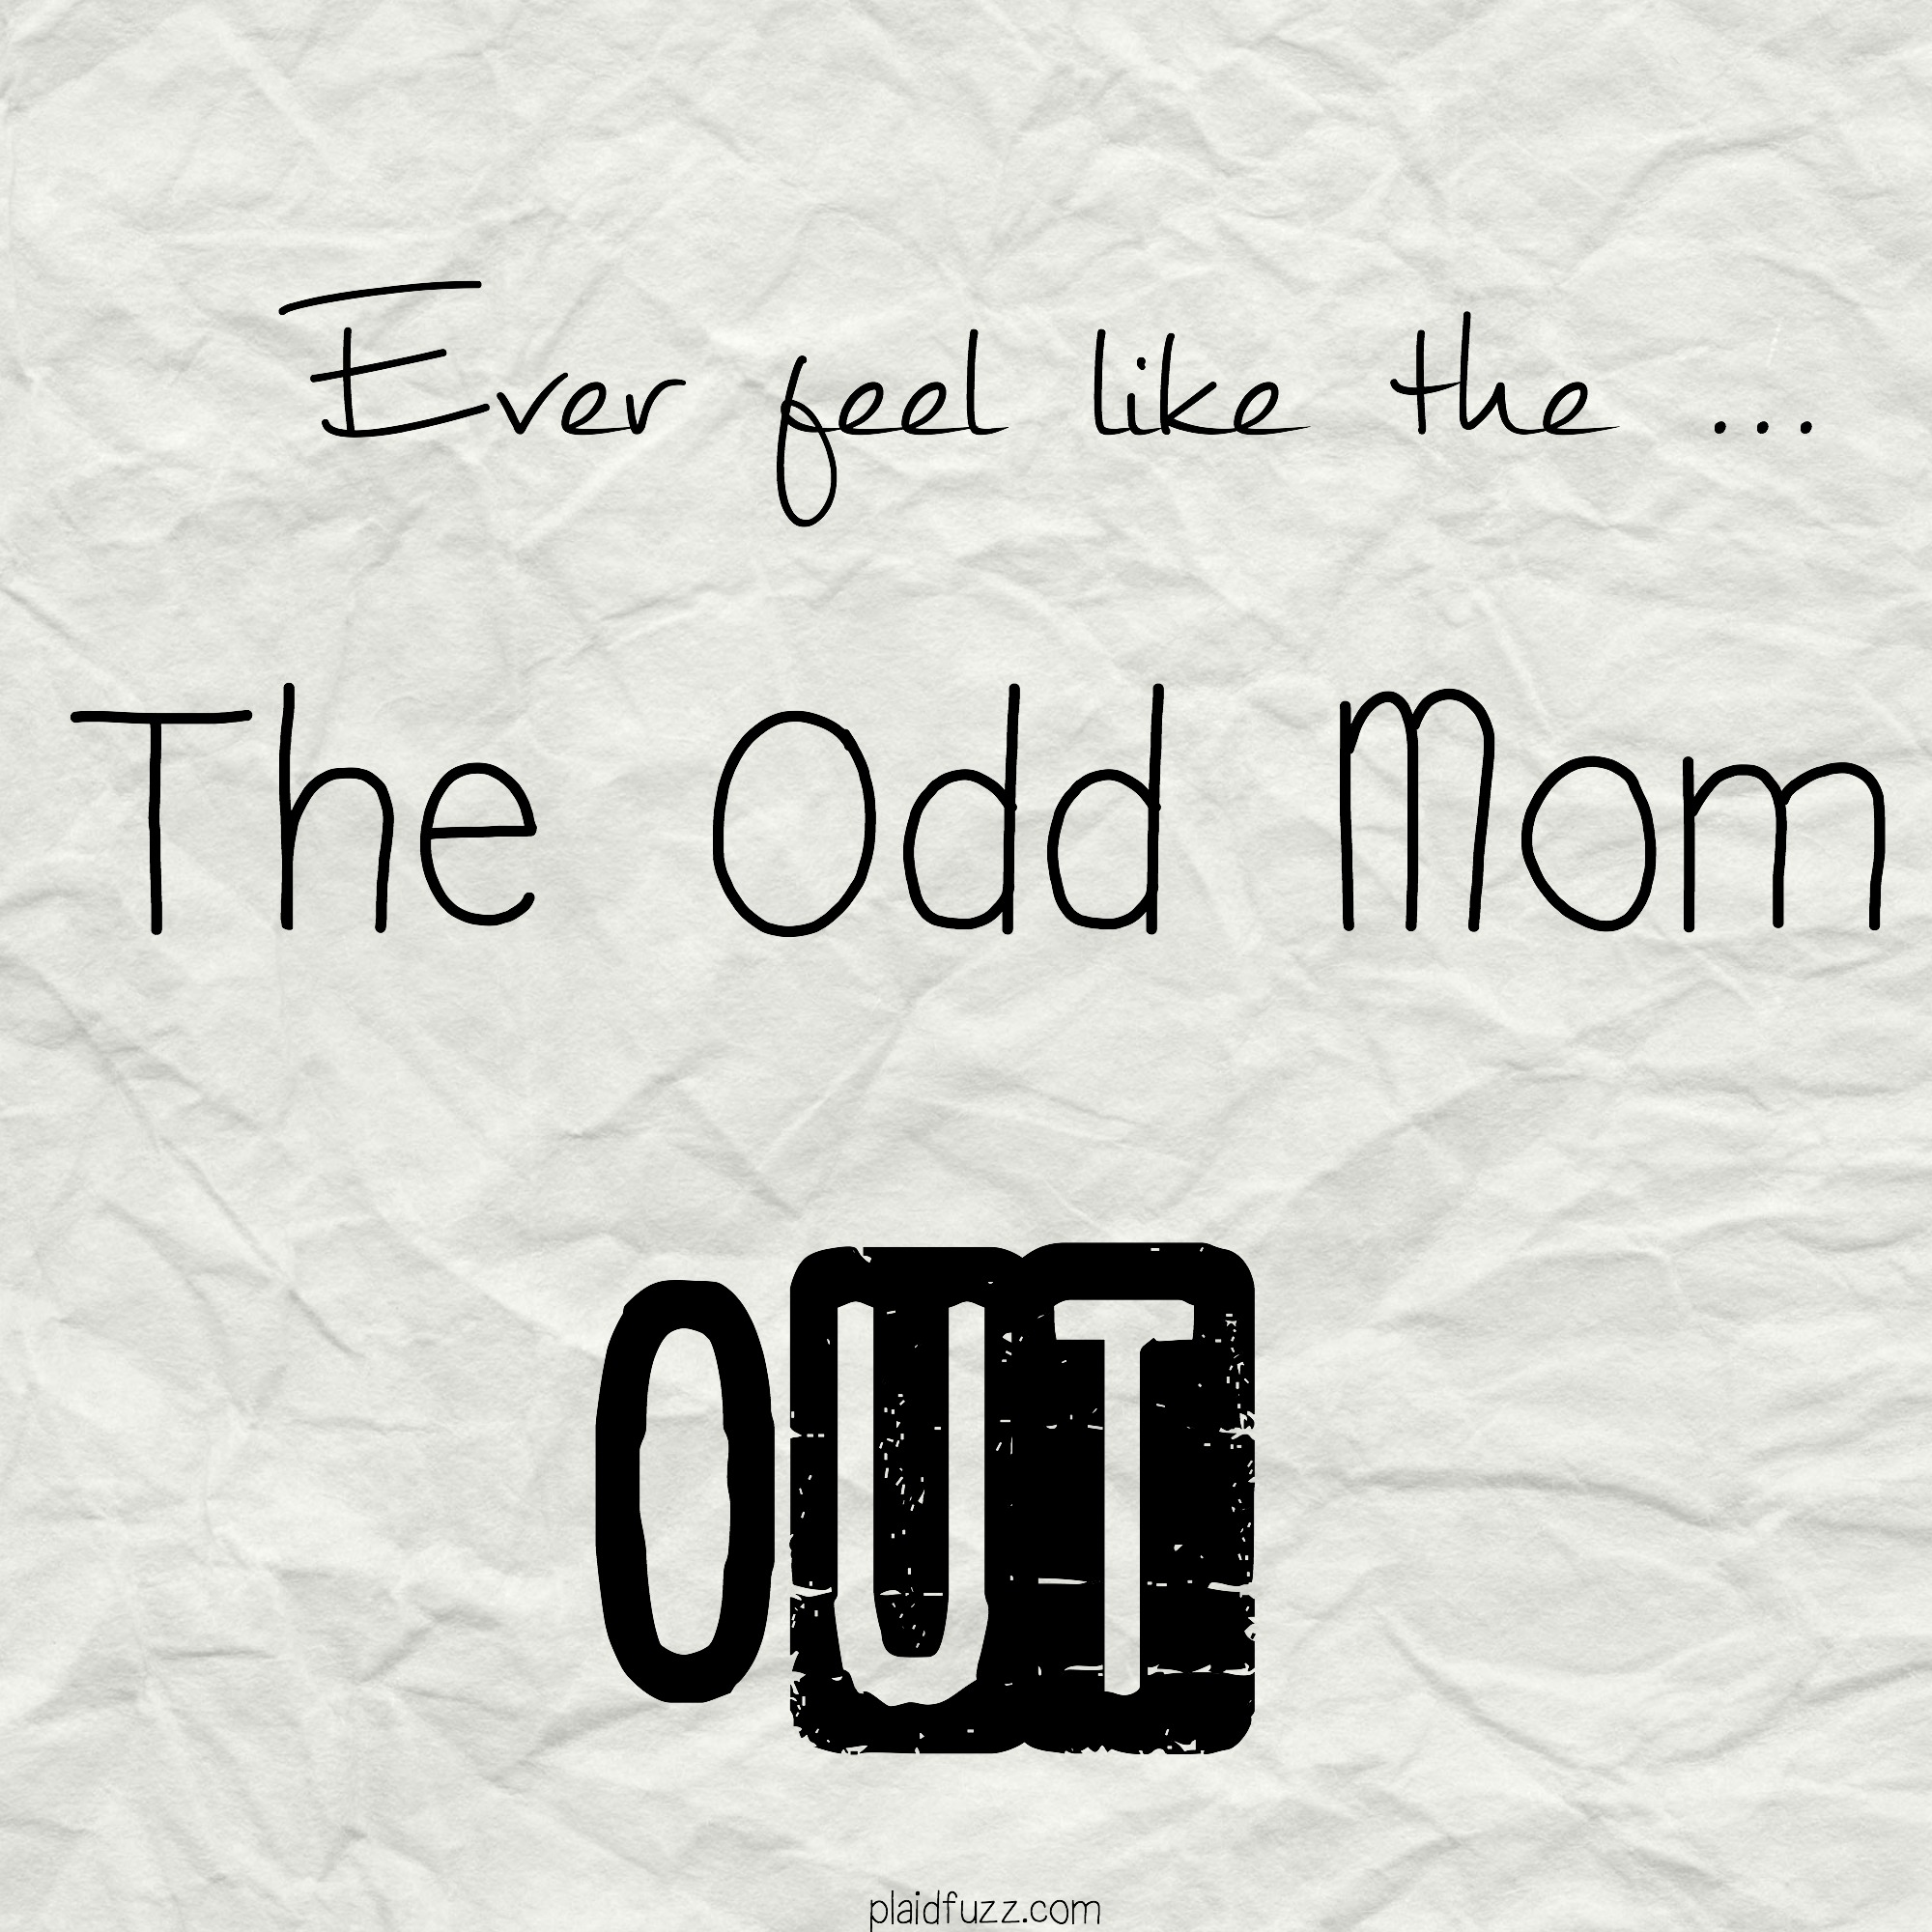 Humor Inspirational Quotes: Ever Feel Like The Odd Mom Out?